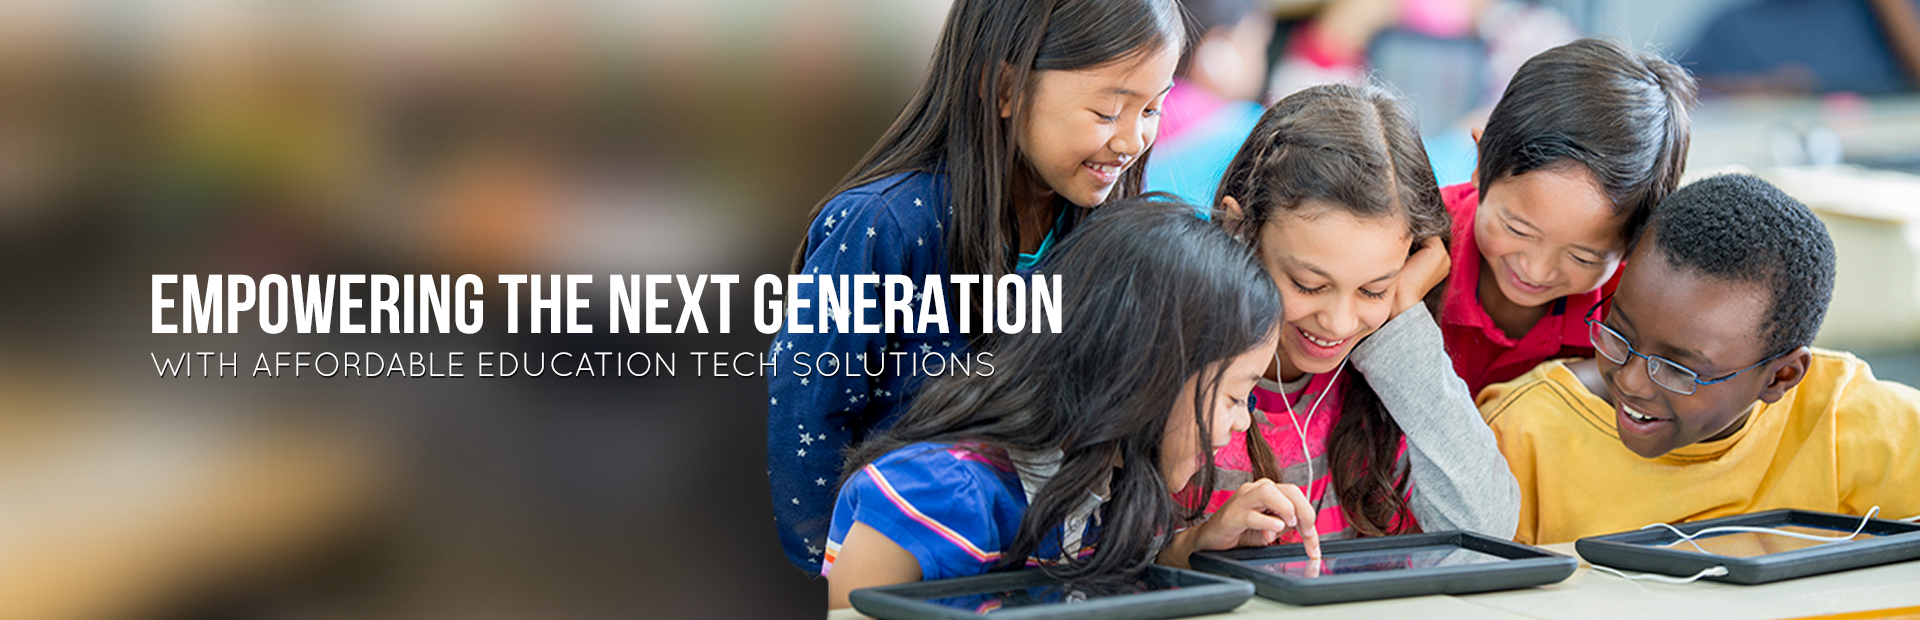 EDUCATION BANNER 2 TEXT